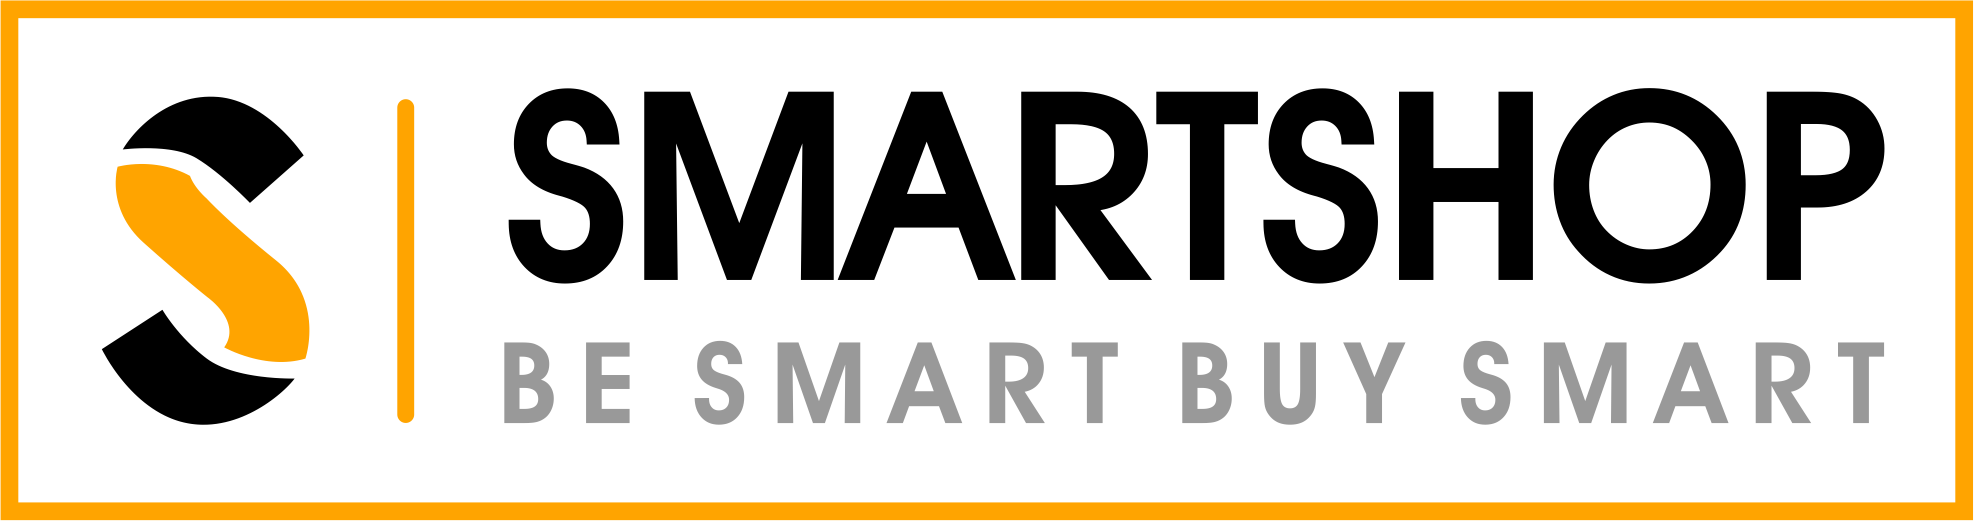 SmartShop - Be Smart Buy Smart